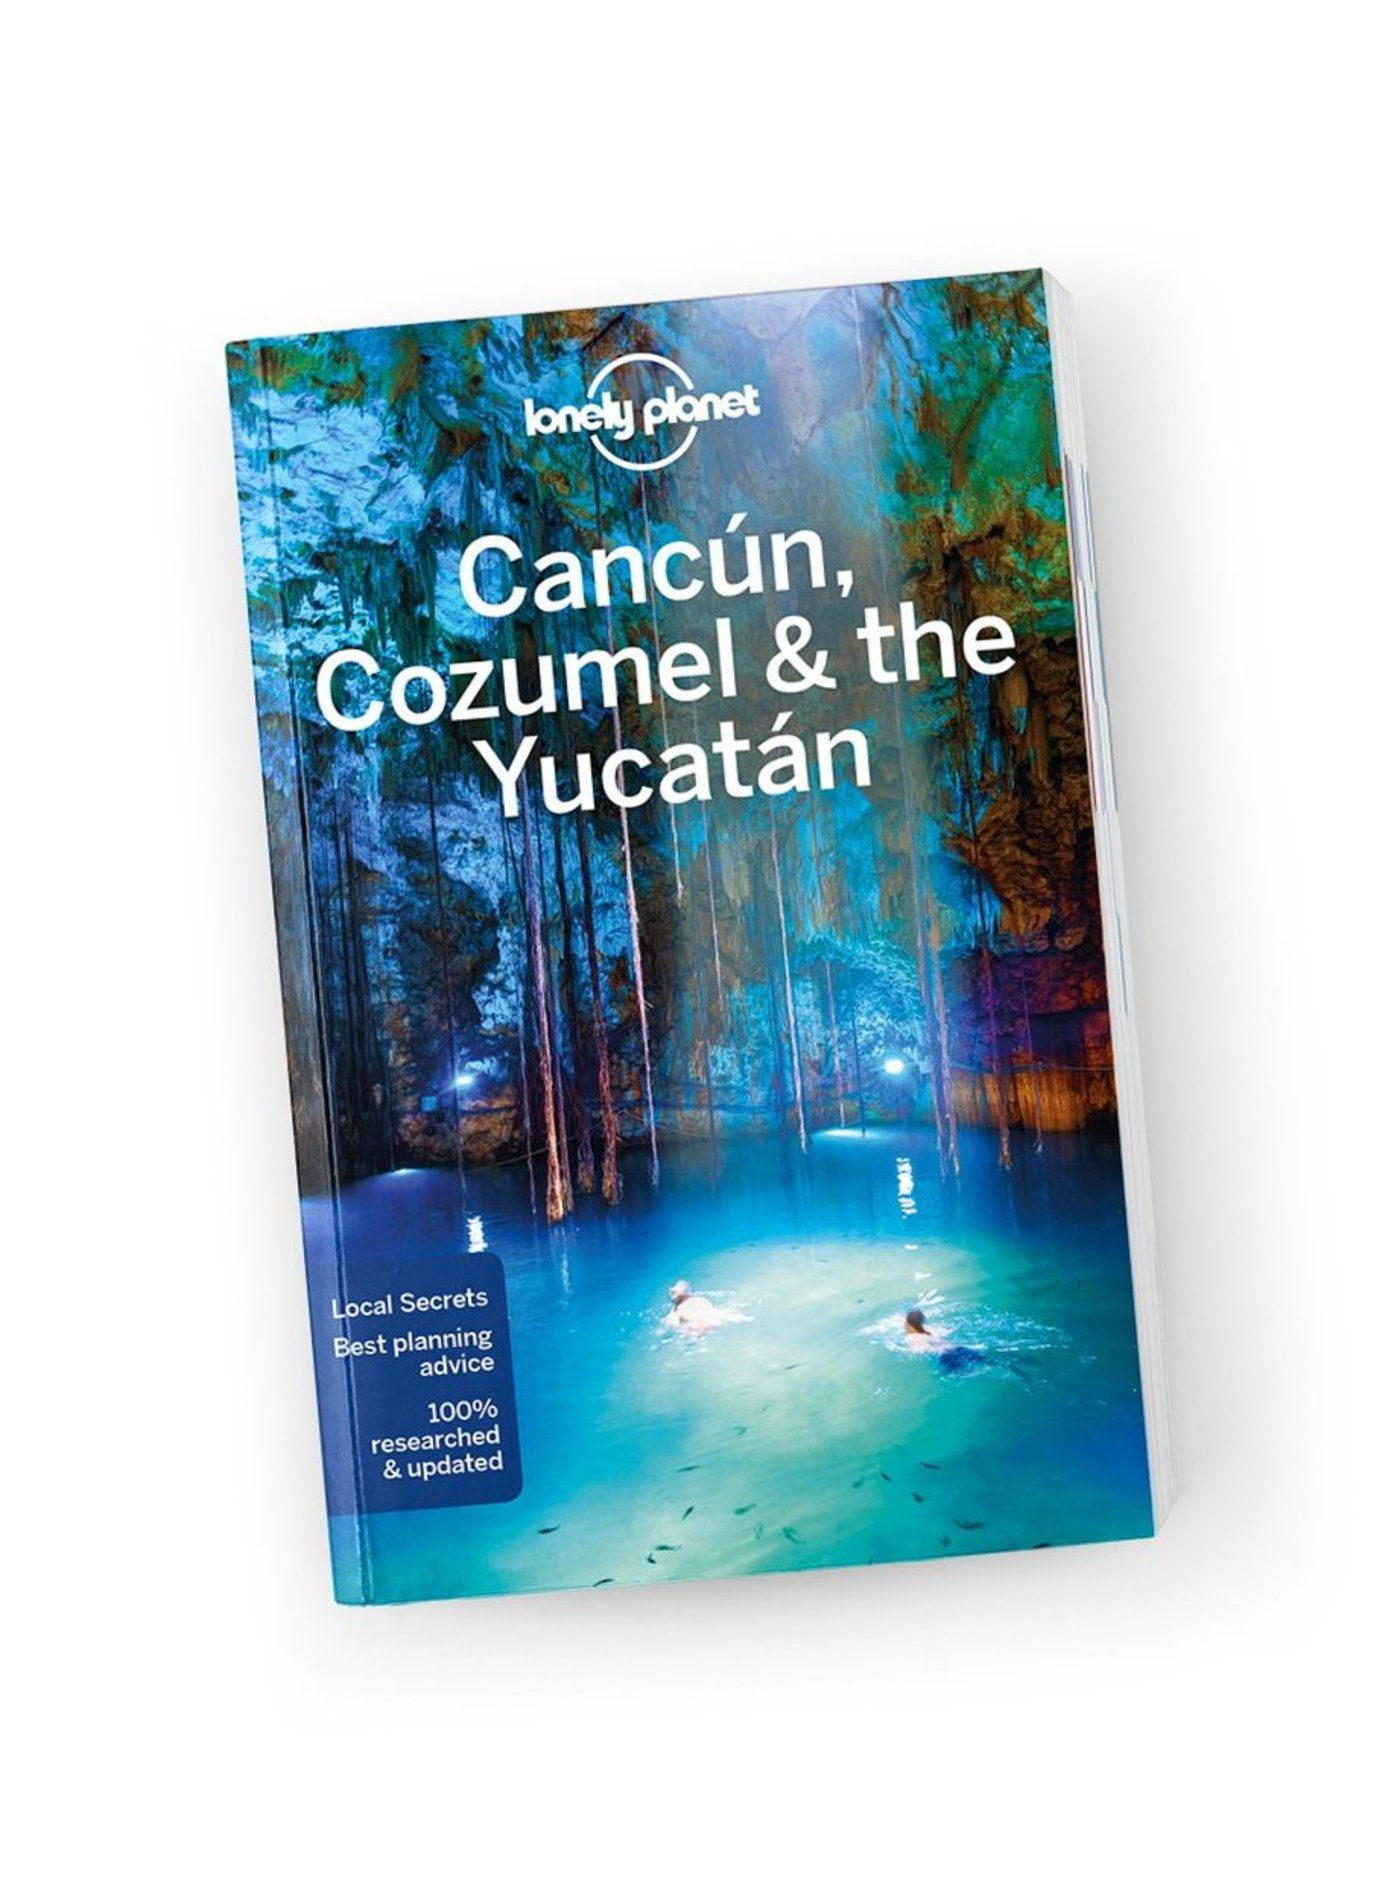 Cancun, Cozumel & the Yucatan travel guide